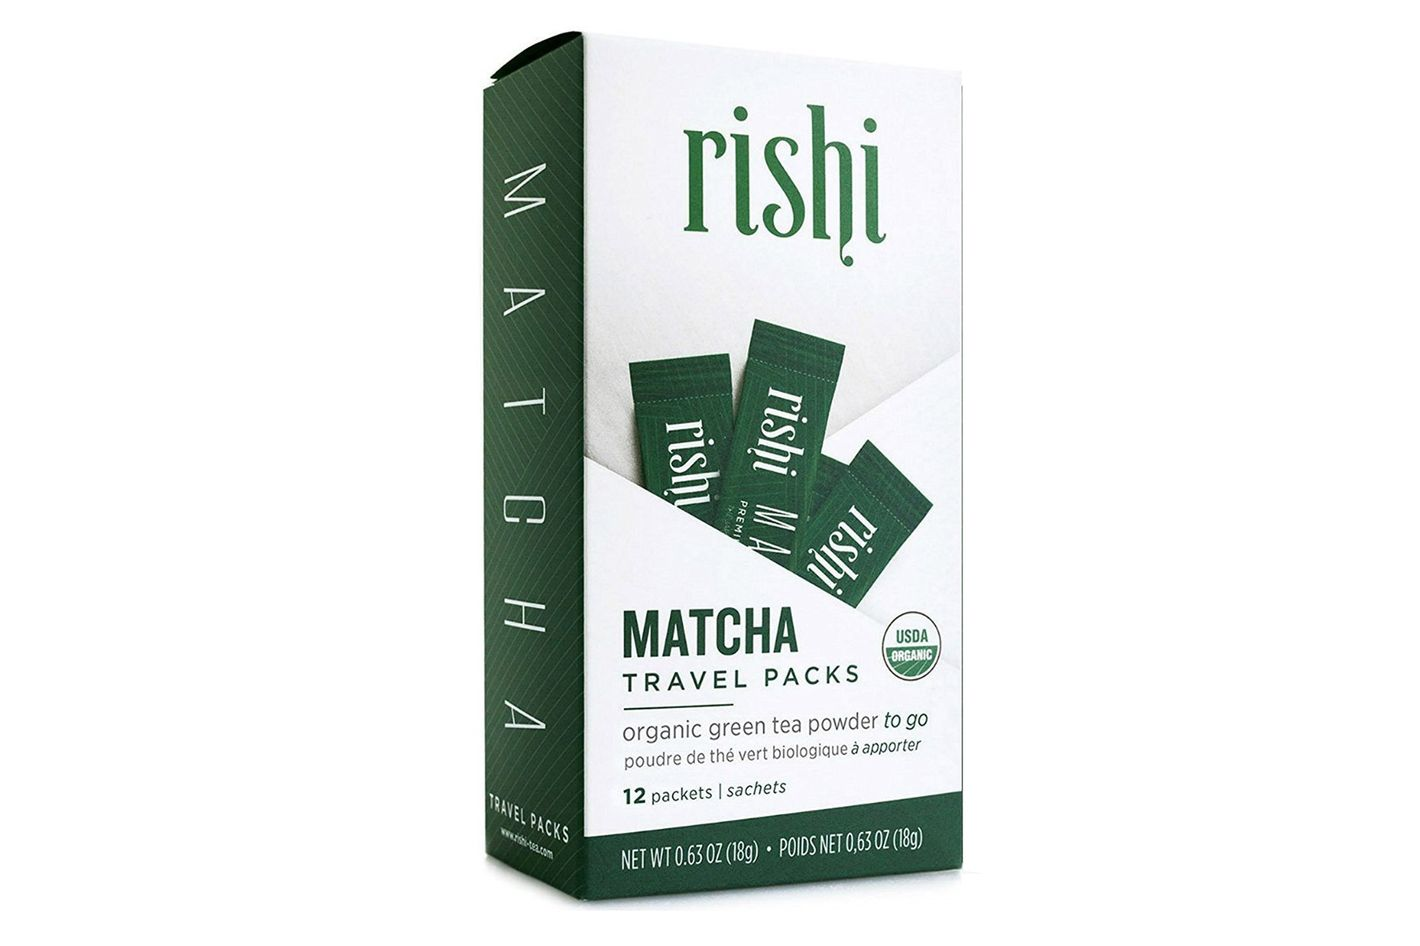 Rishi Tea Organic Matcha Japanese Green Tea Powder, 12 Travel Packets